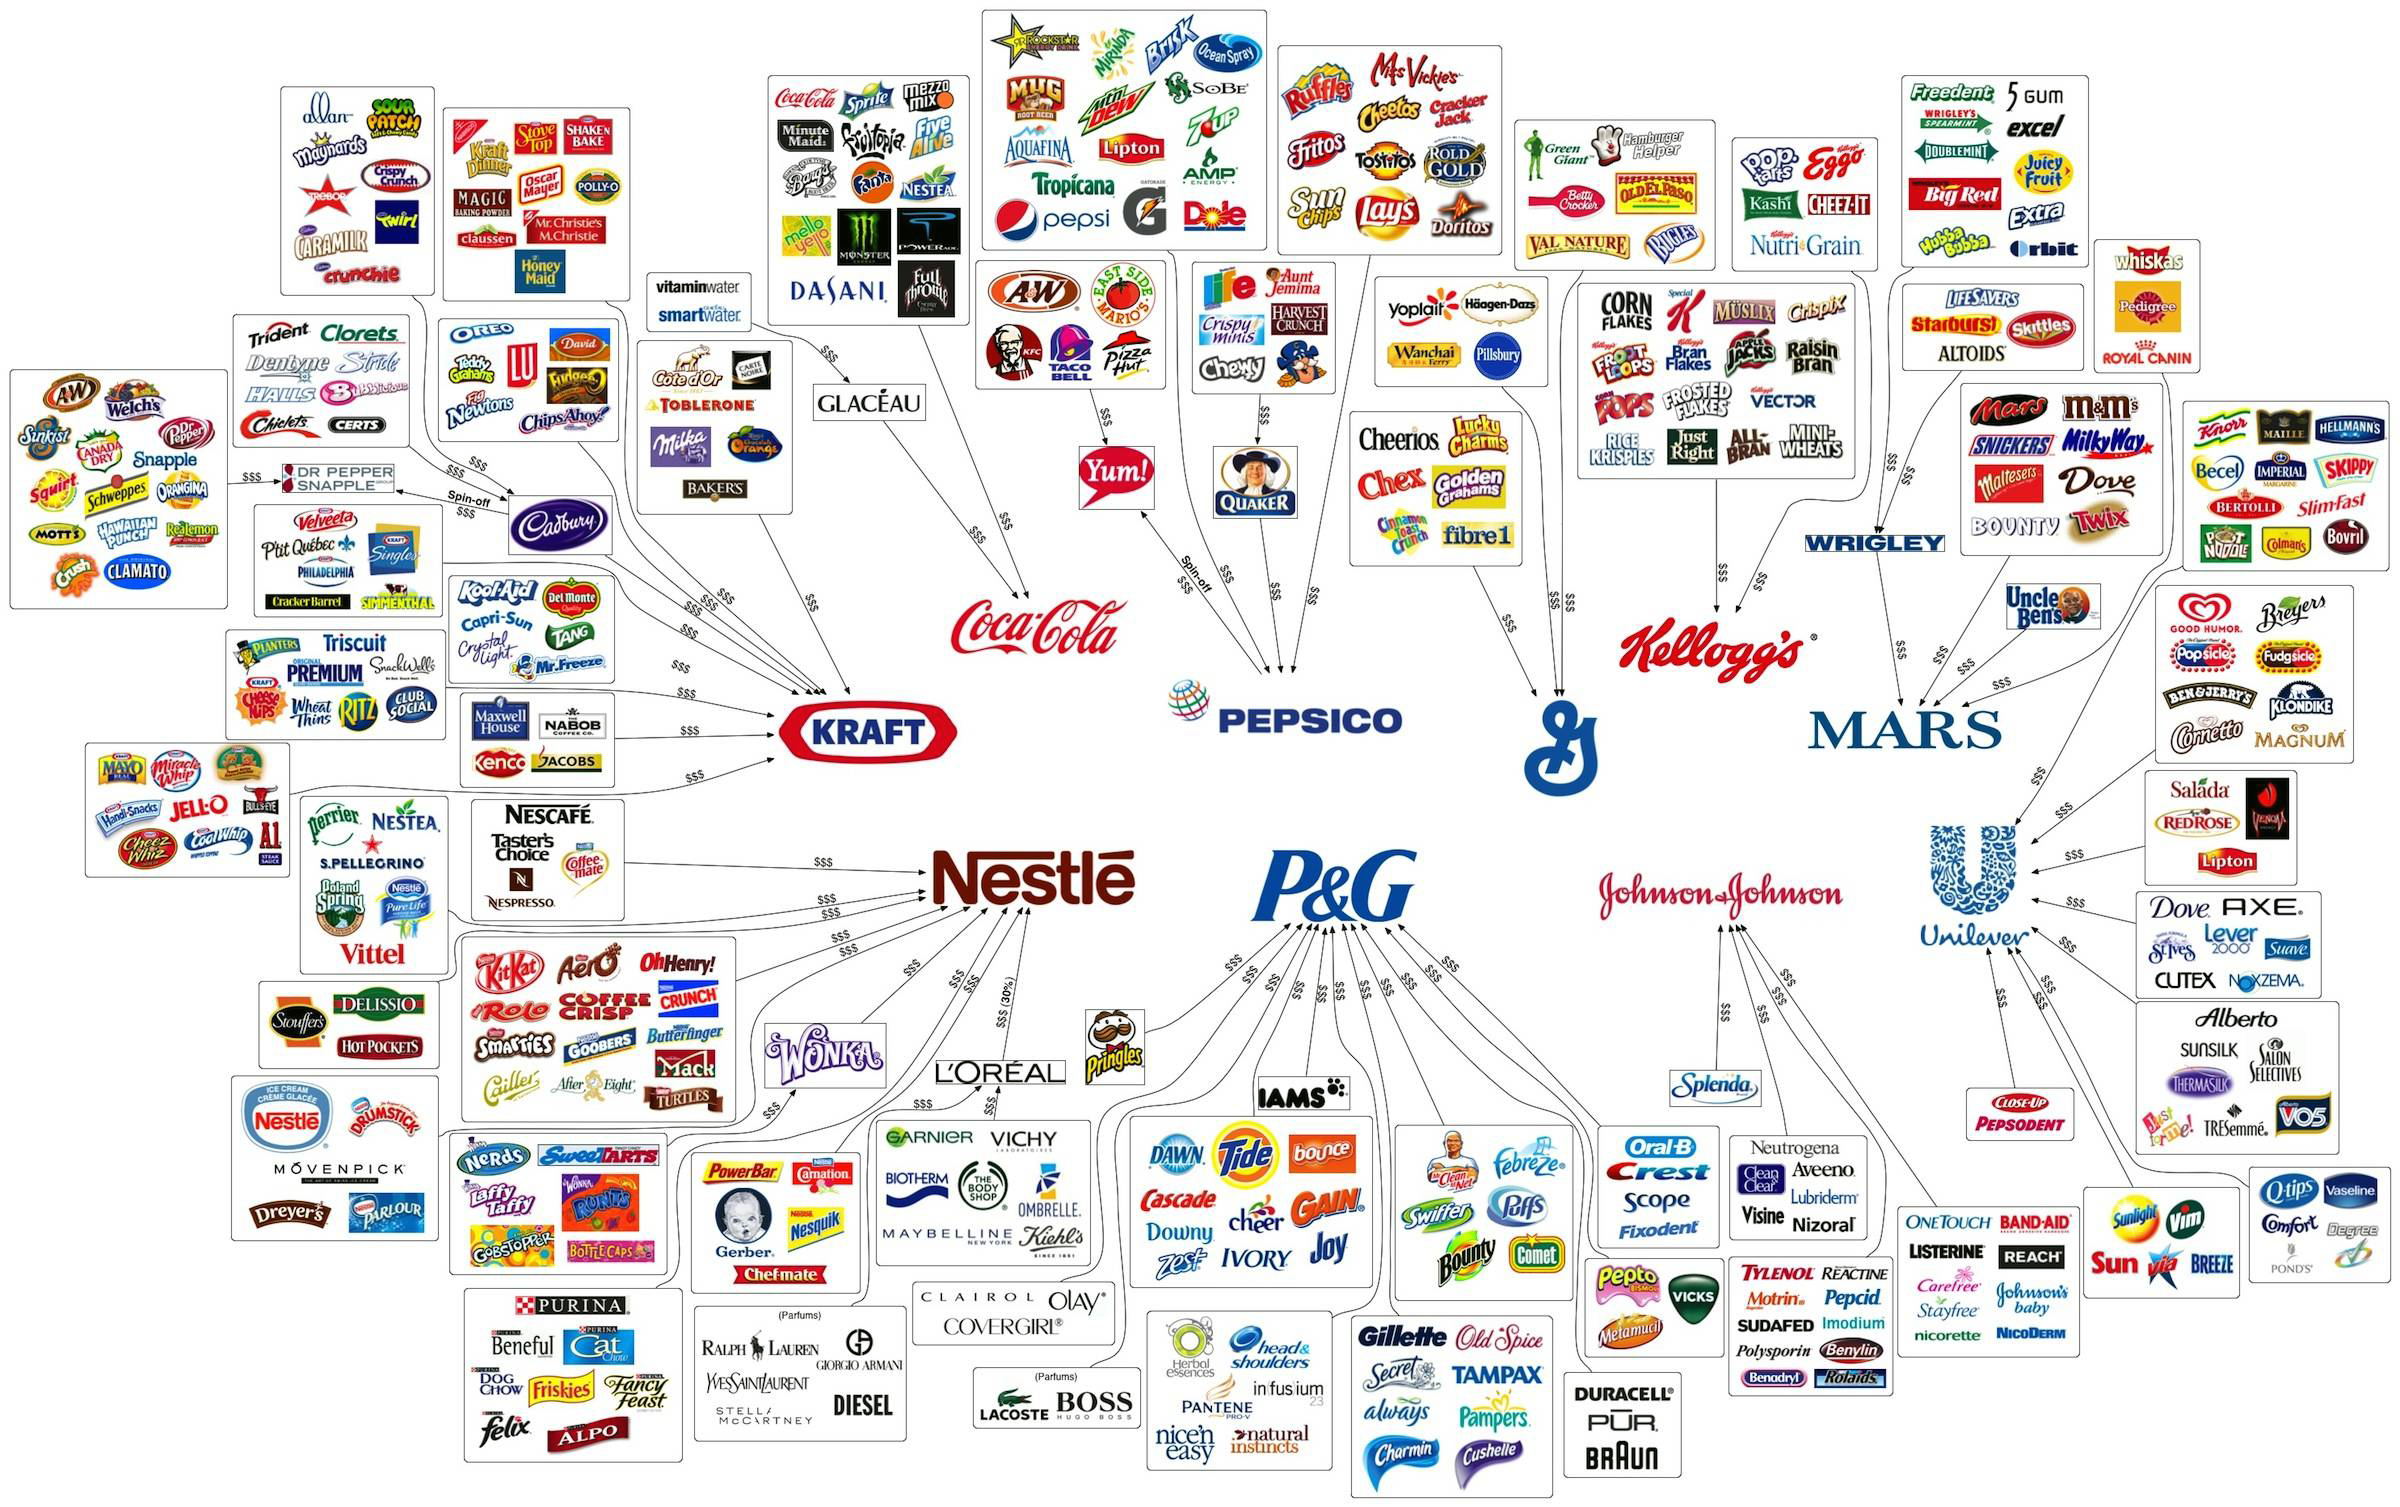 10 Companies Own Most Of The Food Products And Household Items We Buy (Infographic)